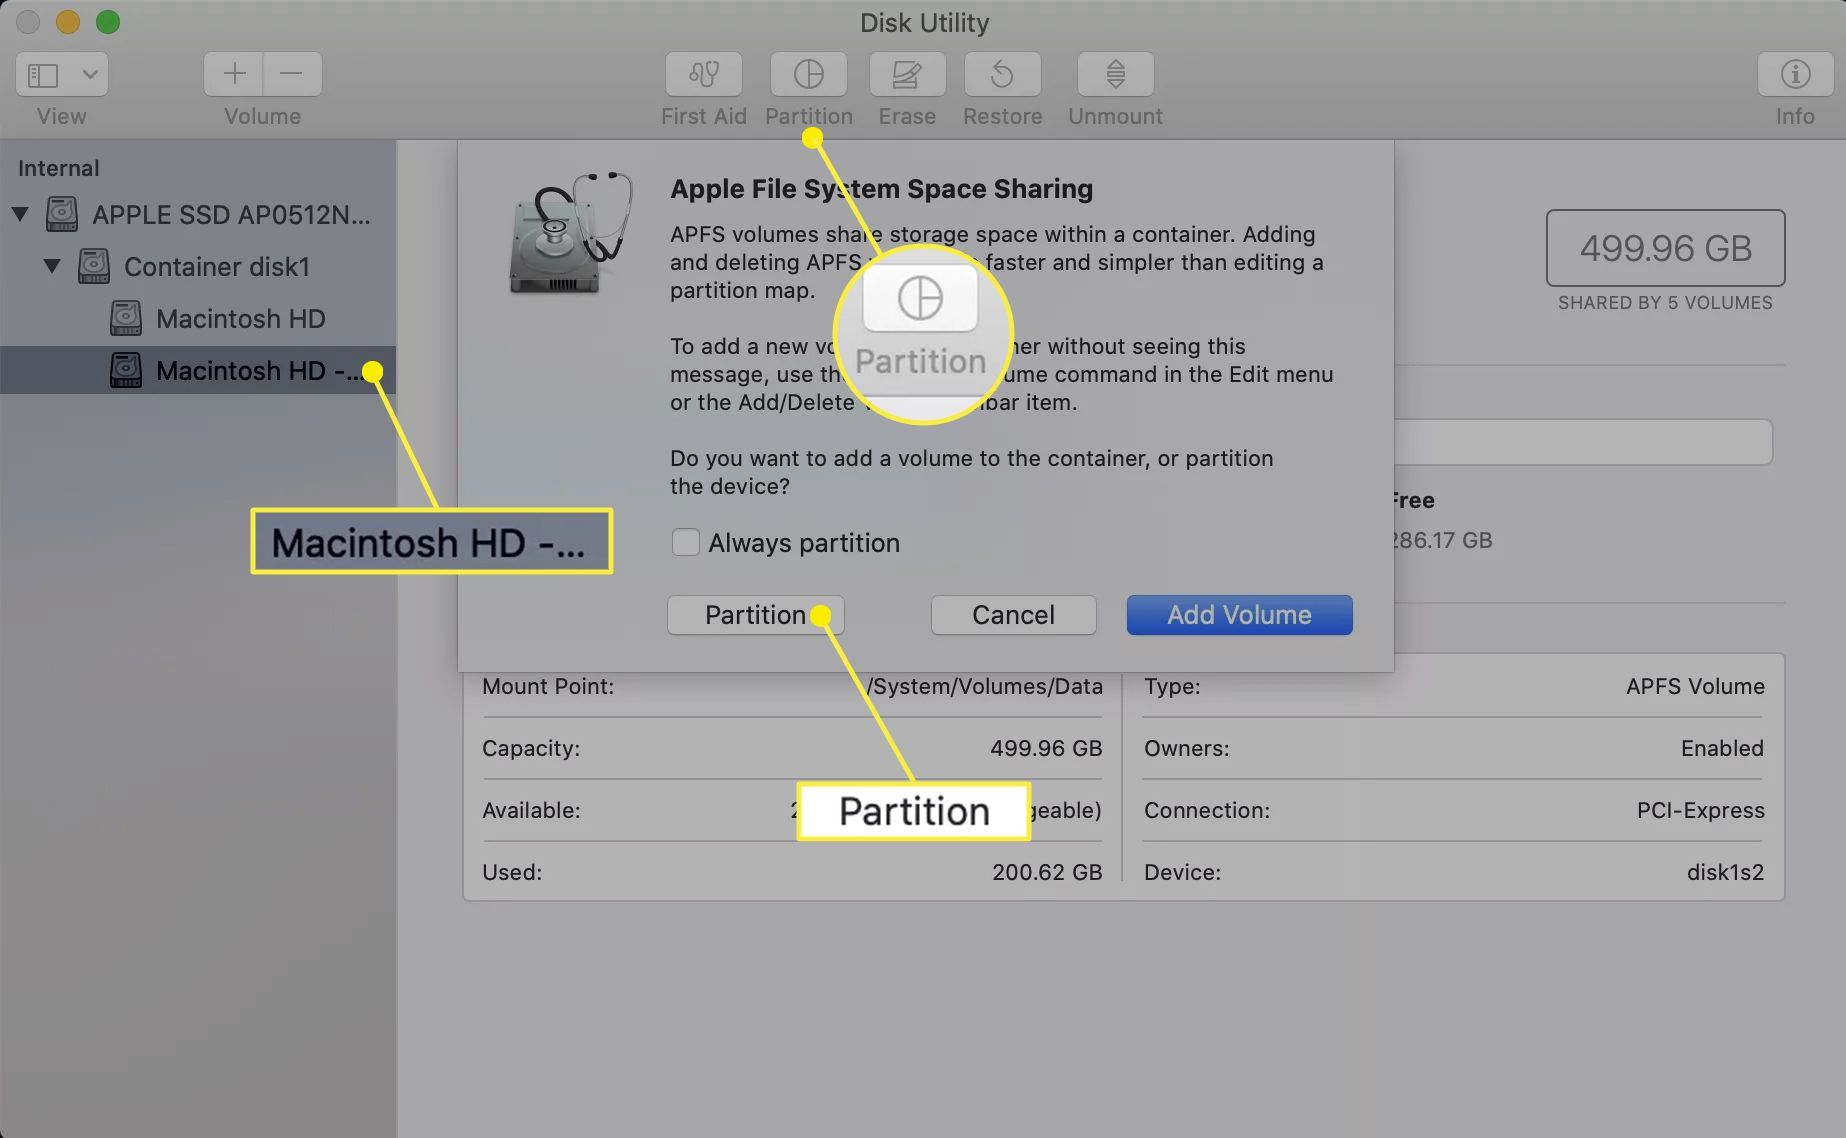 Disk Utility showing the Partition option